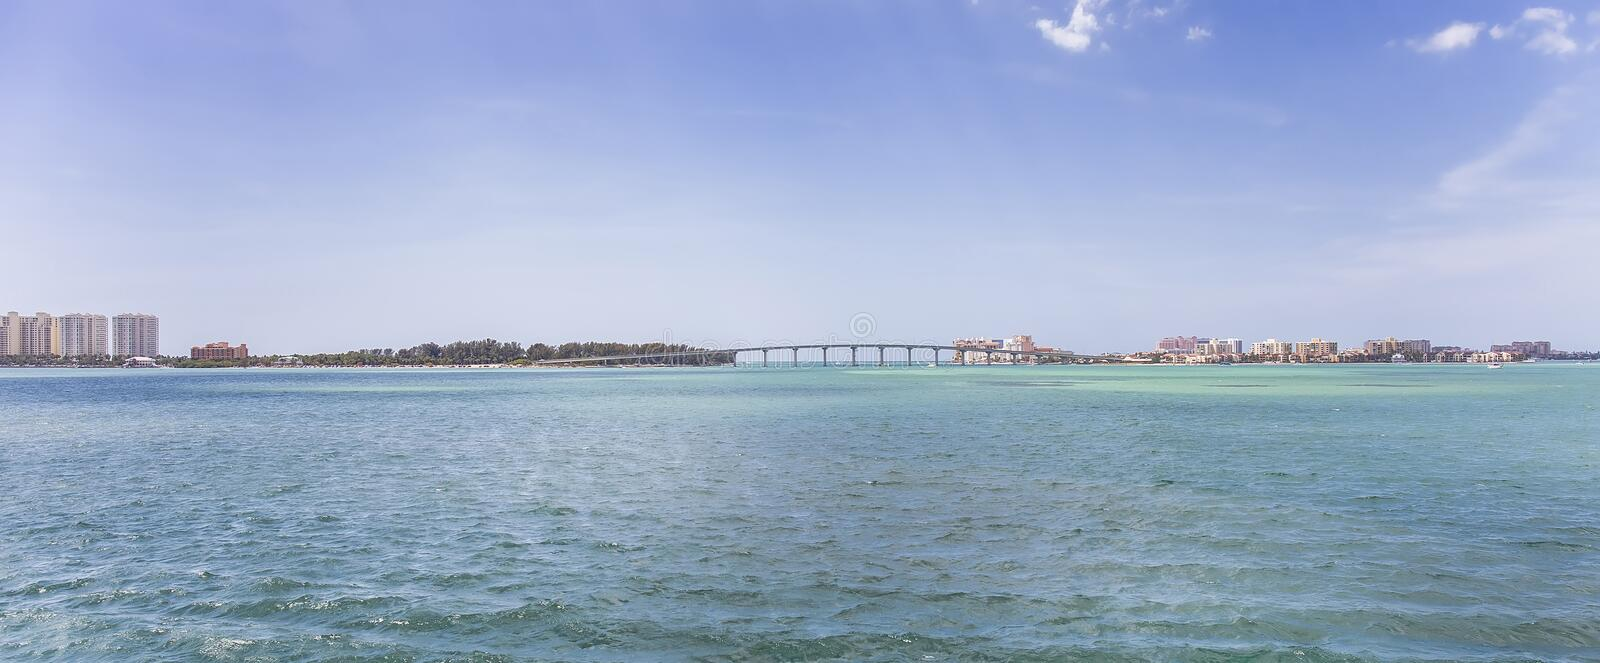 Clearwater Beach and Sand Key, Florida. Sand Key on the left, and Clearwater Beach, Florida on the right, seen over an intracoastal waterway with a connecting stock photos